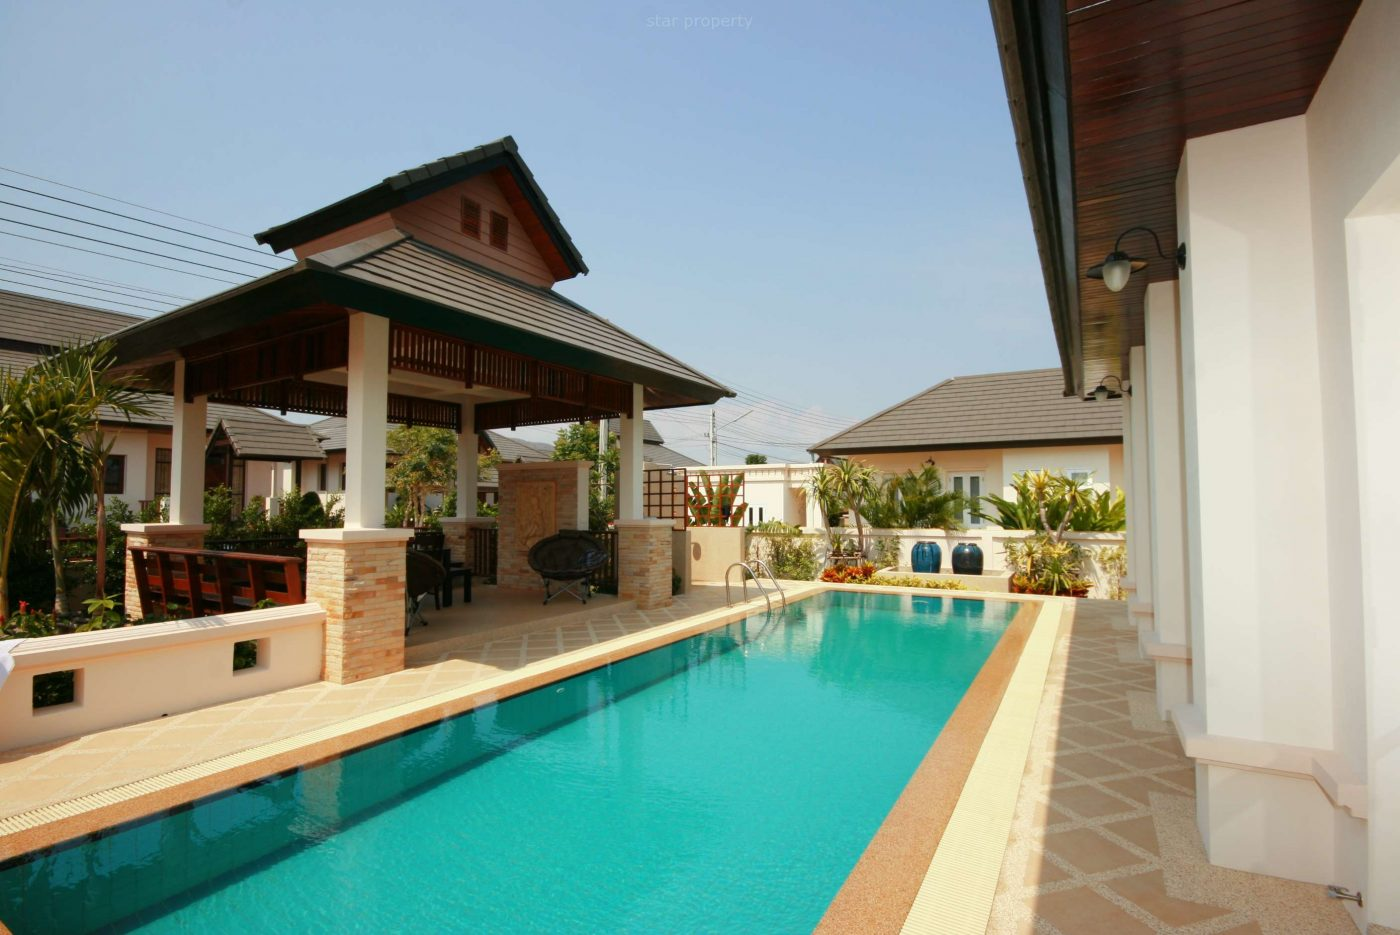 Hillside Hamlet for rent Hua Hin Soi 6 at Hillside Hamlet Hua Hin Soi 6